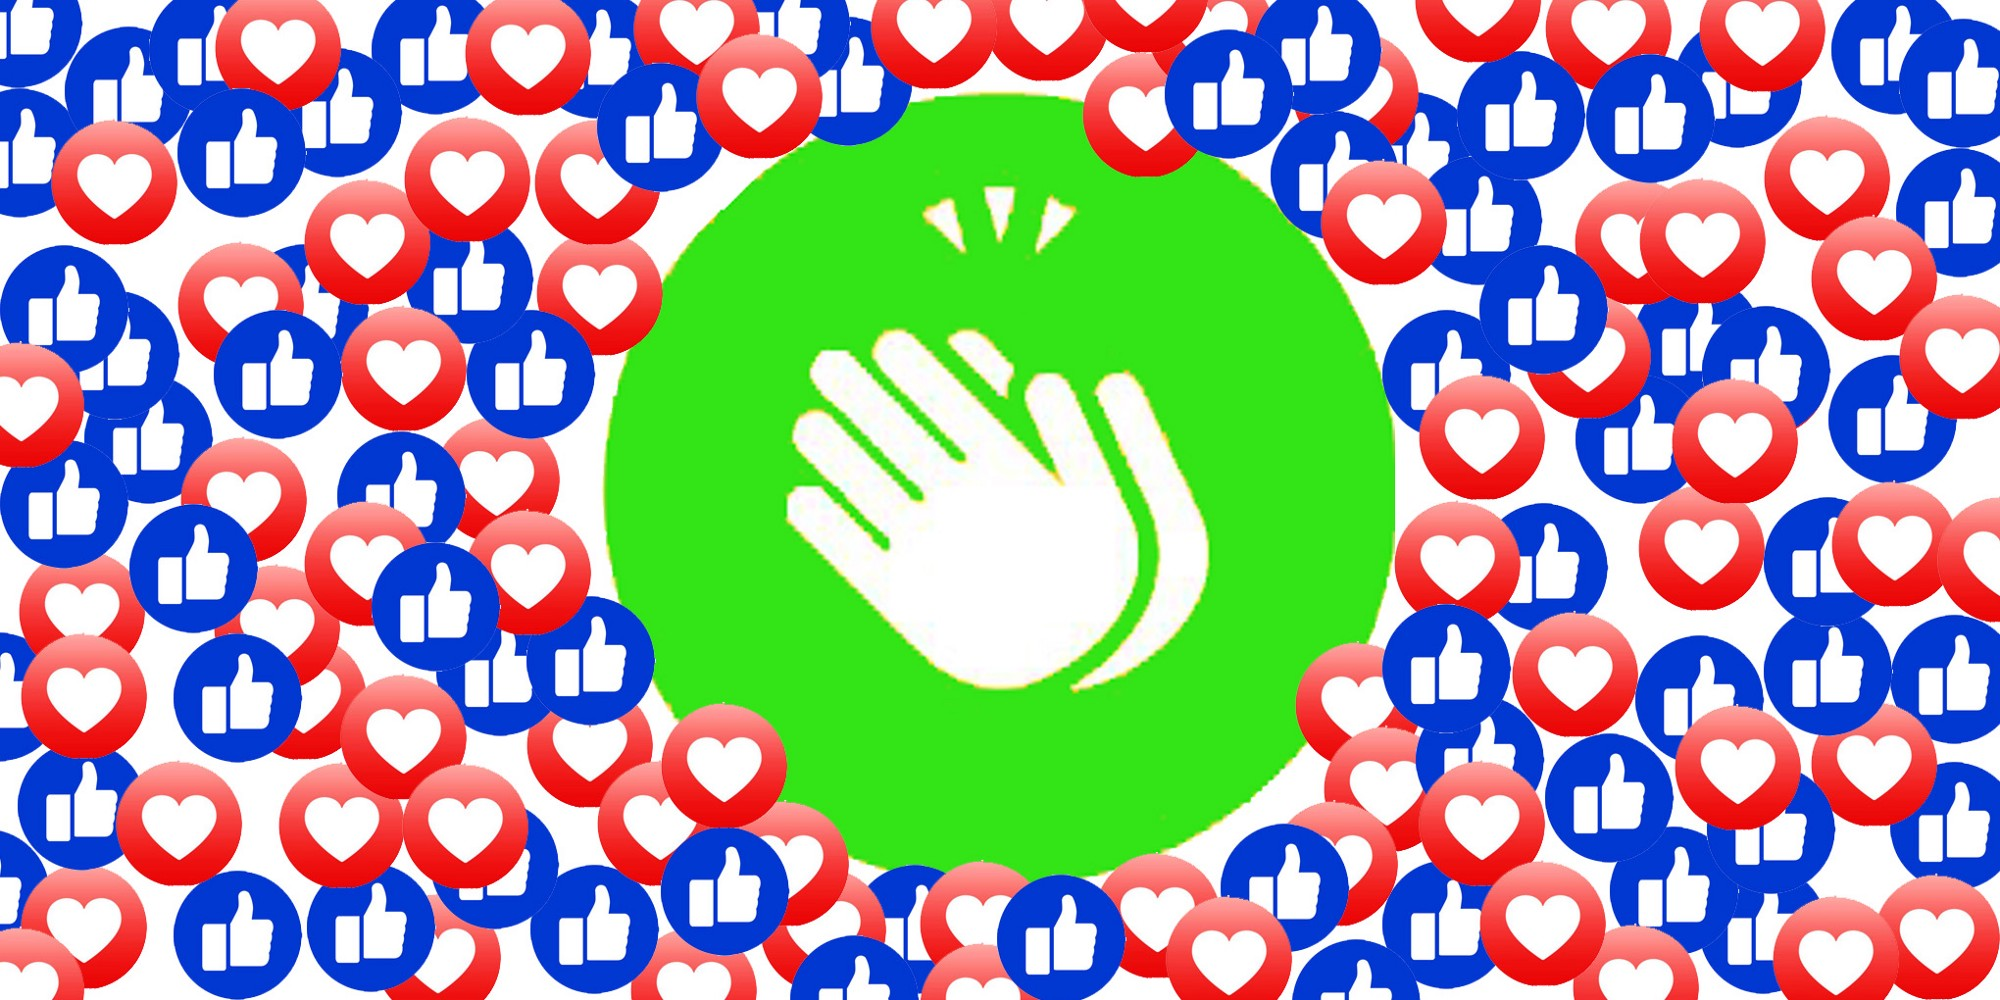 A montage of social media like, love and clap emojis and icons